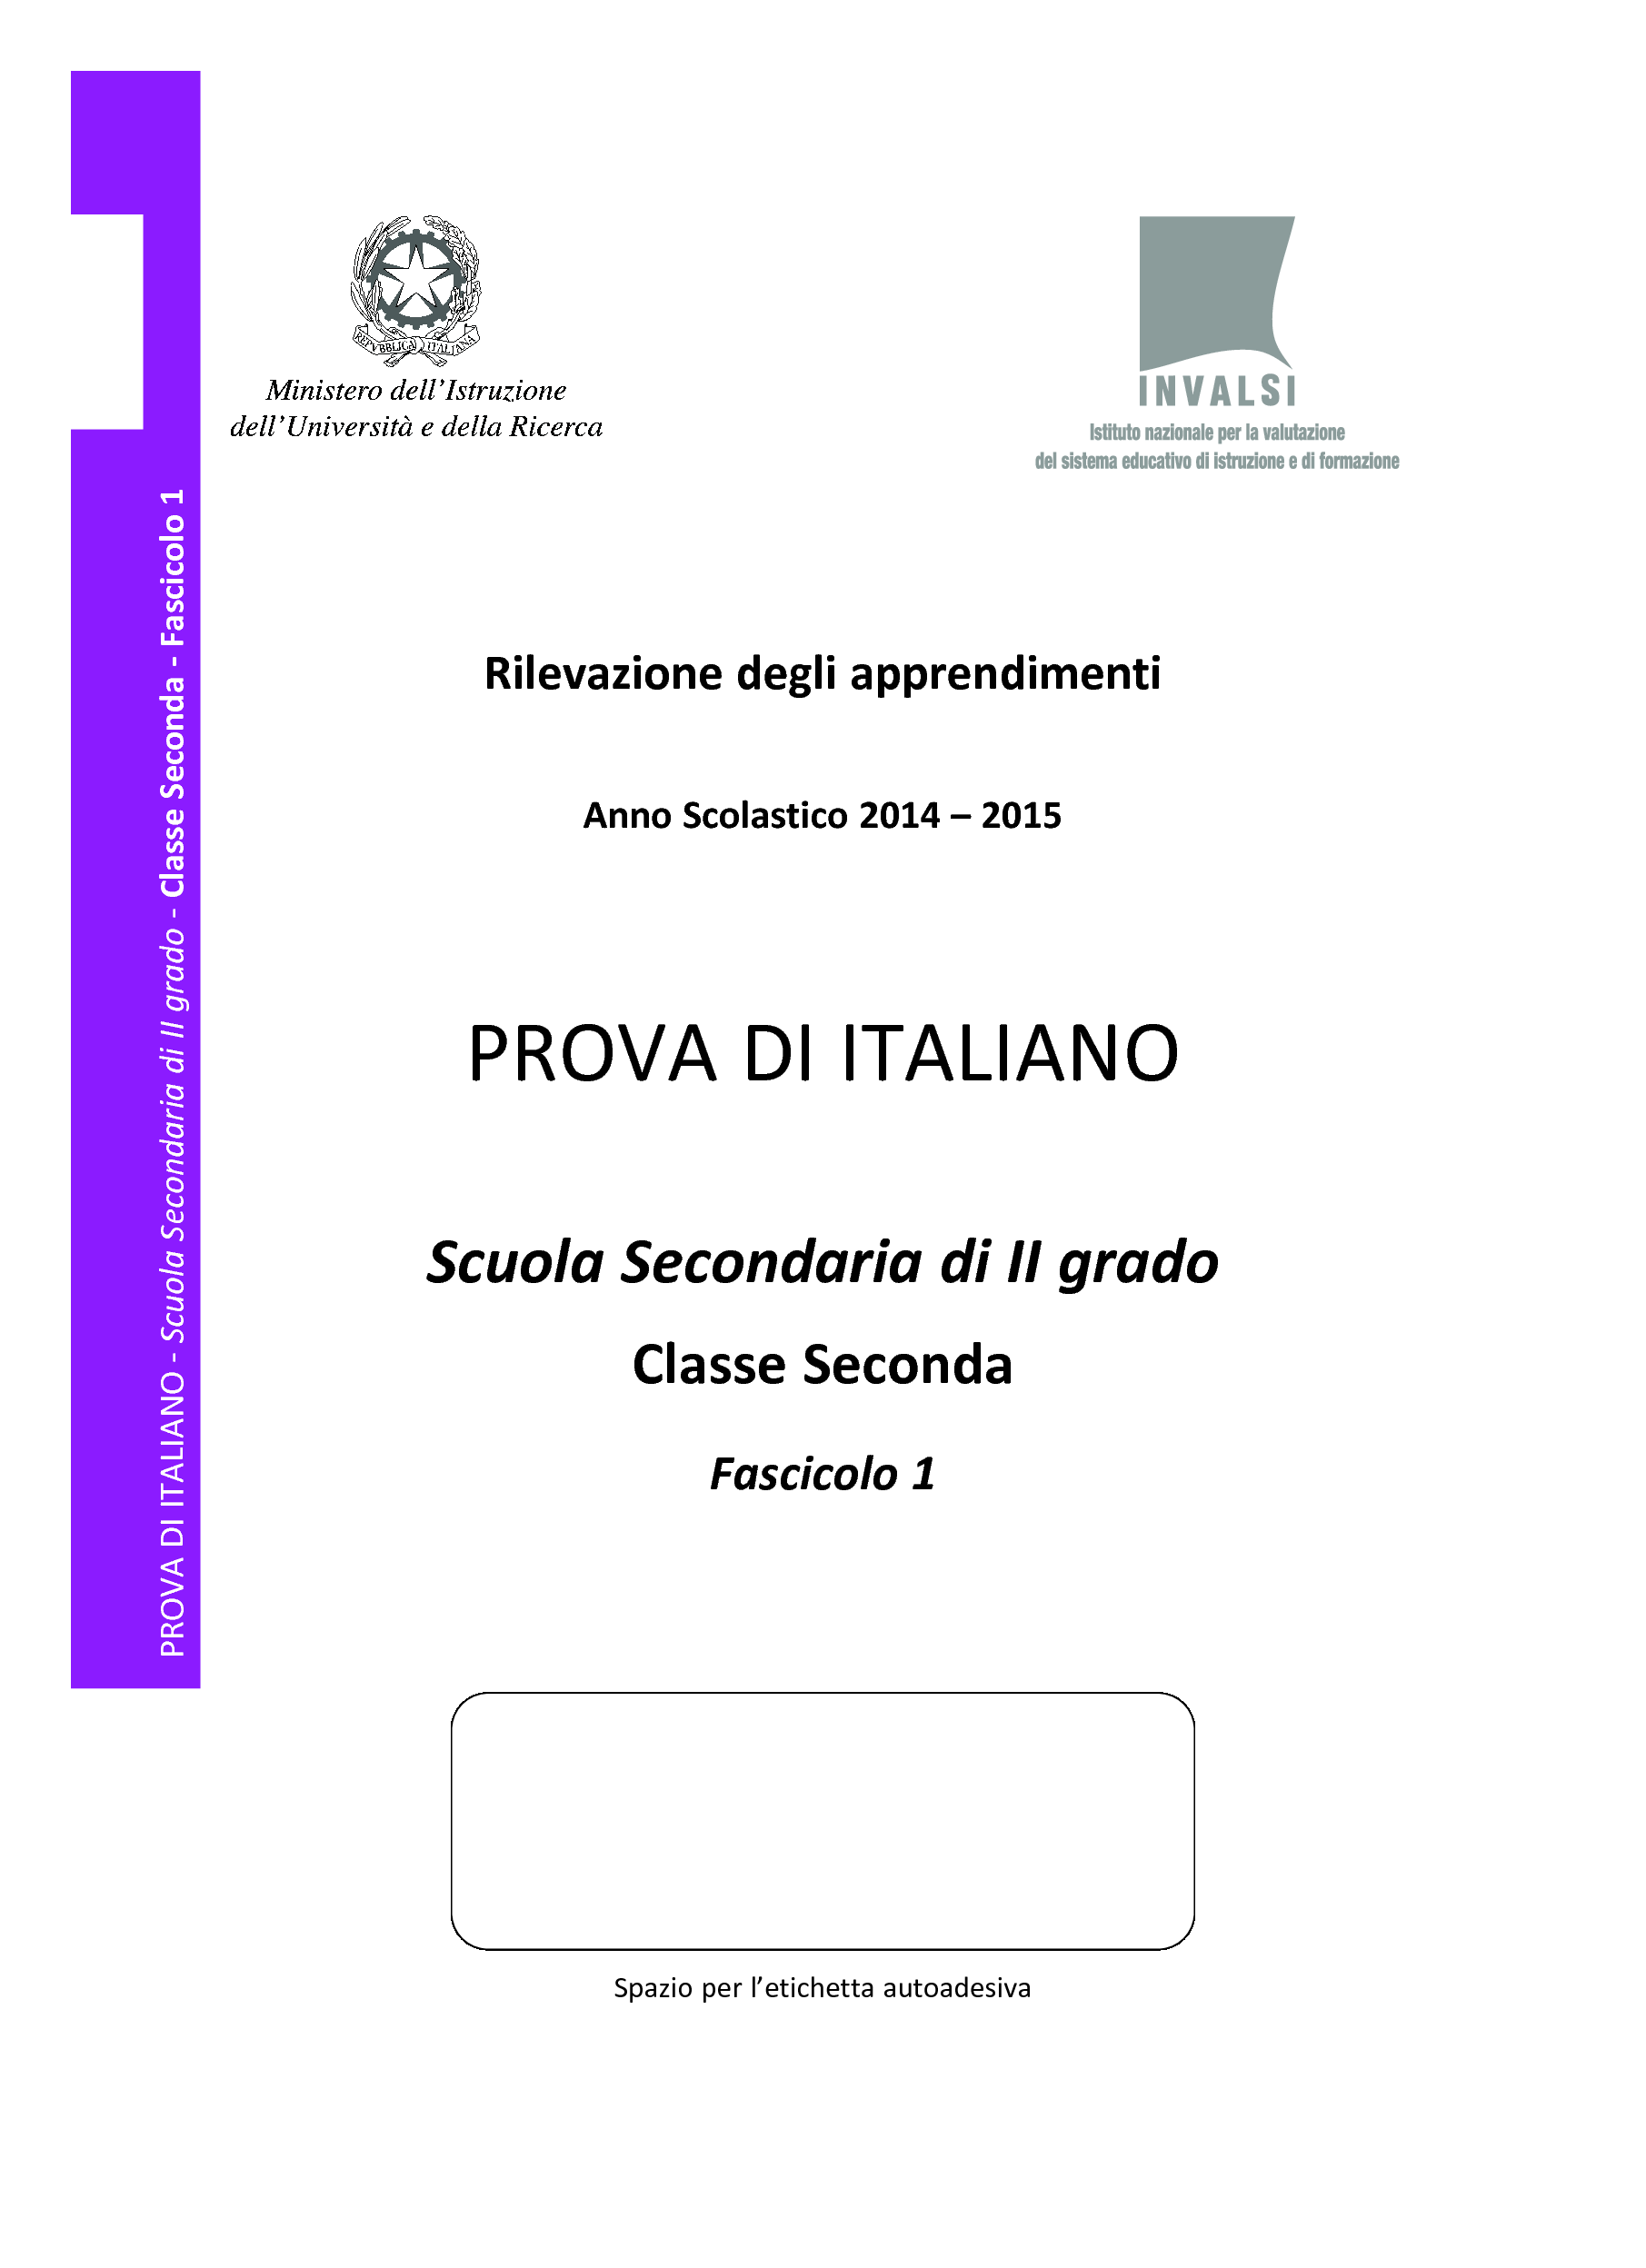 Prova Invalsi Italiano 2014-2015 - seconda classe Superiori pg. 1